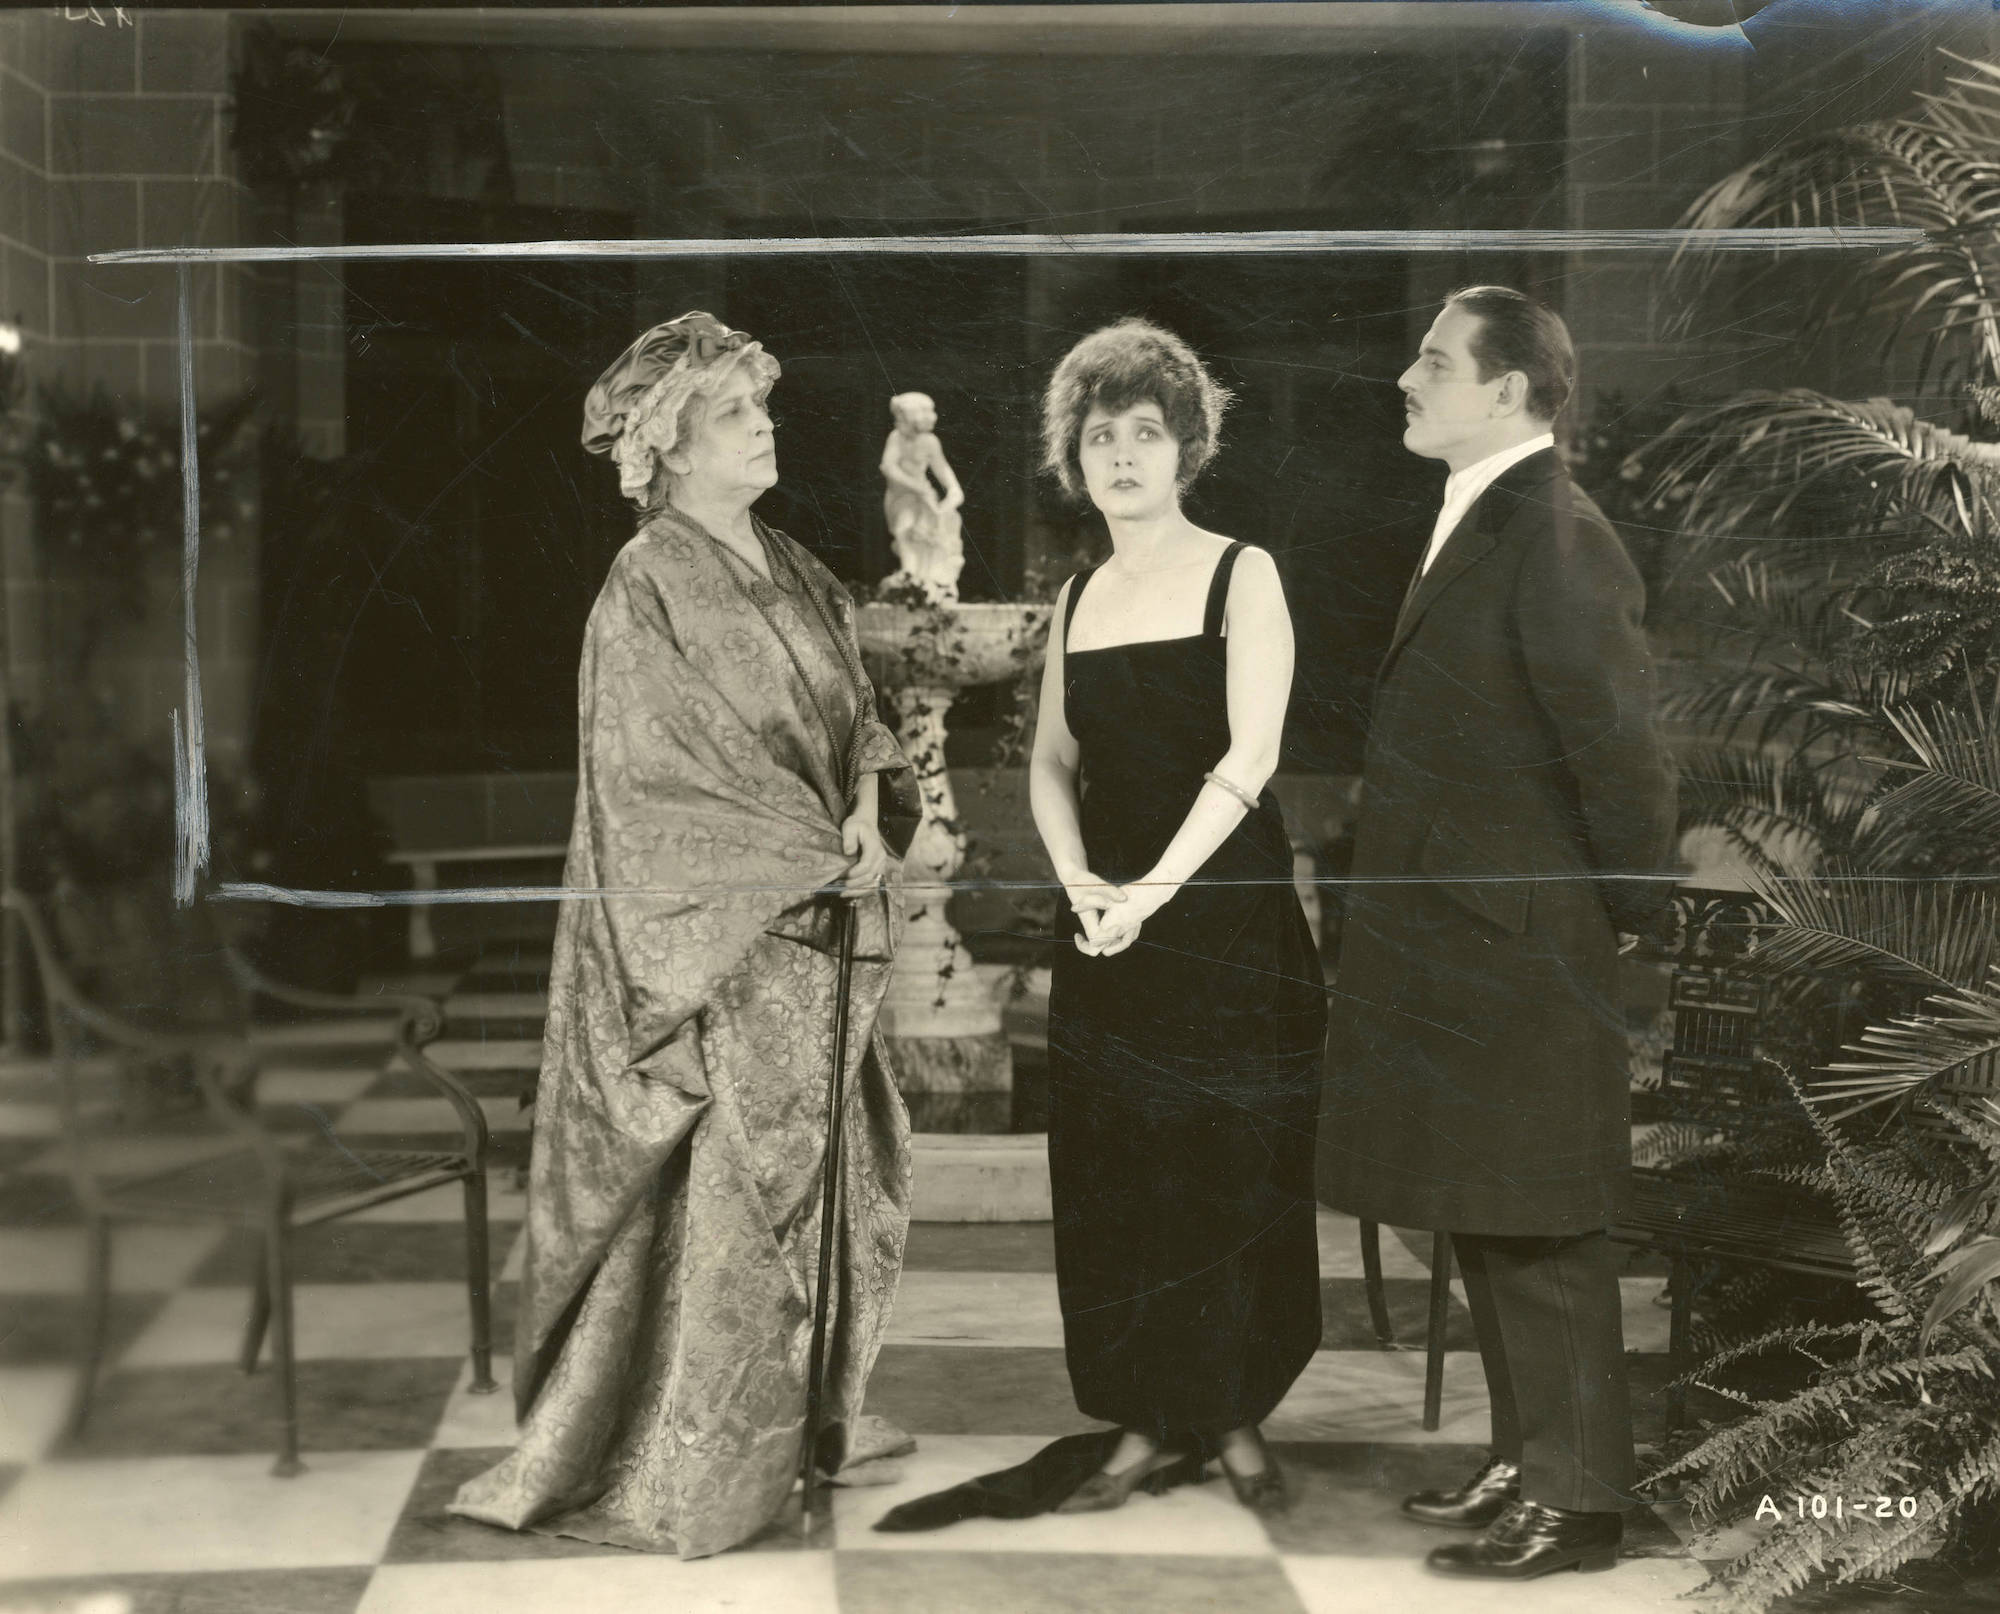 A black and white photograph of a man and two women standing in a courtyard. The man and older woman look at each other sternly, while the younger woman stands between them looking concerned.